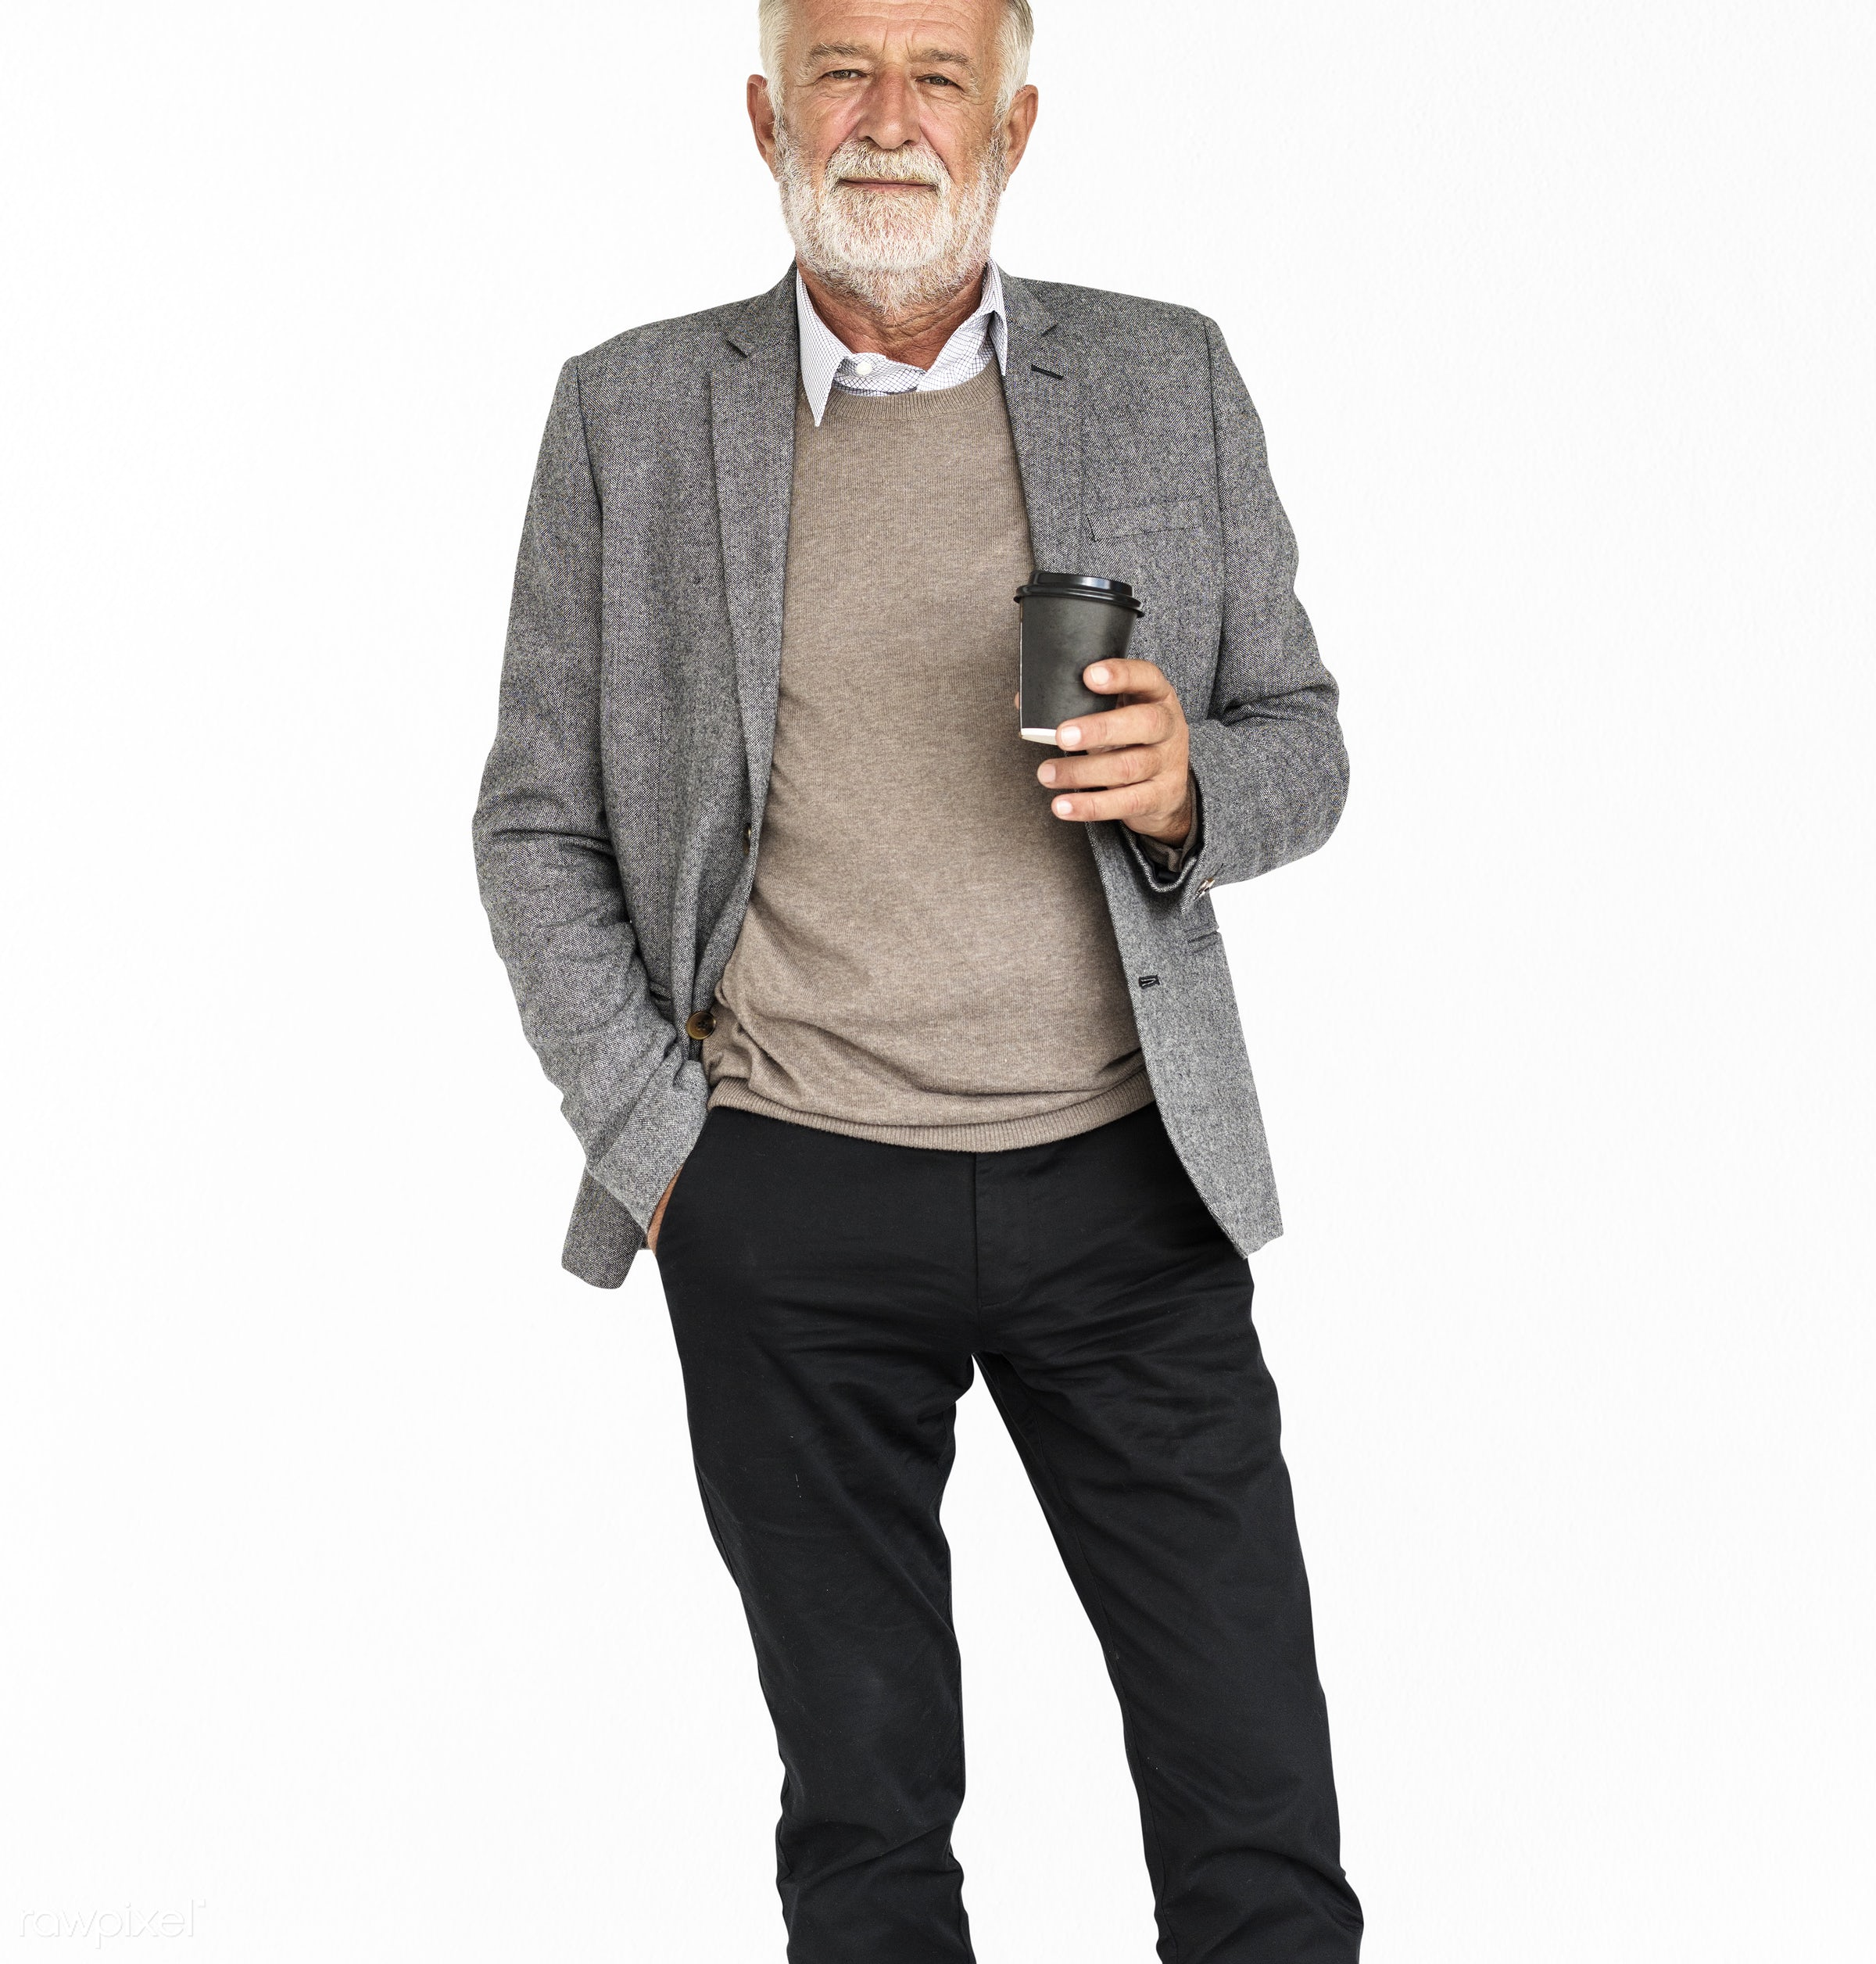 isolated on white, elderly, hold, holding, laptop, man, senior, stand, standing, suit, thinking, hot drink